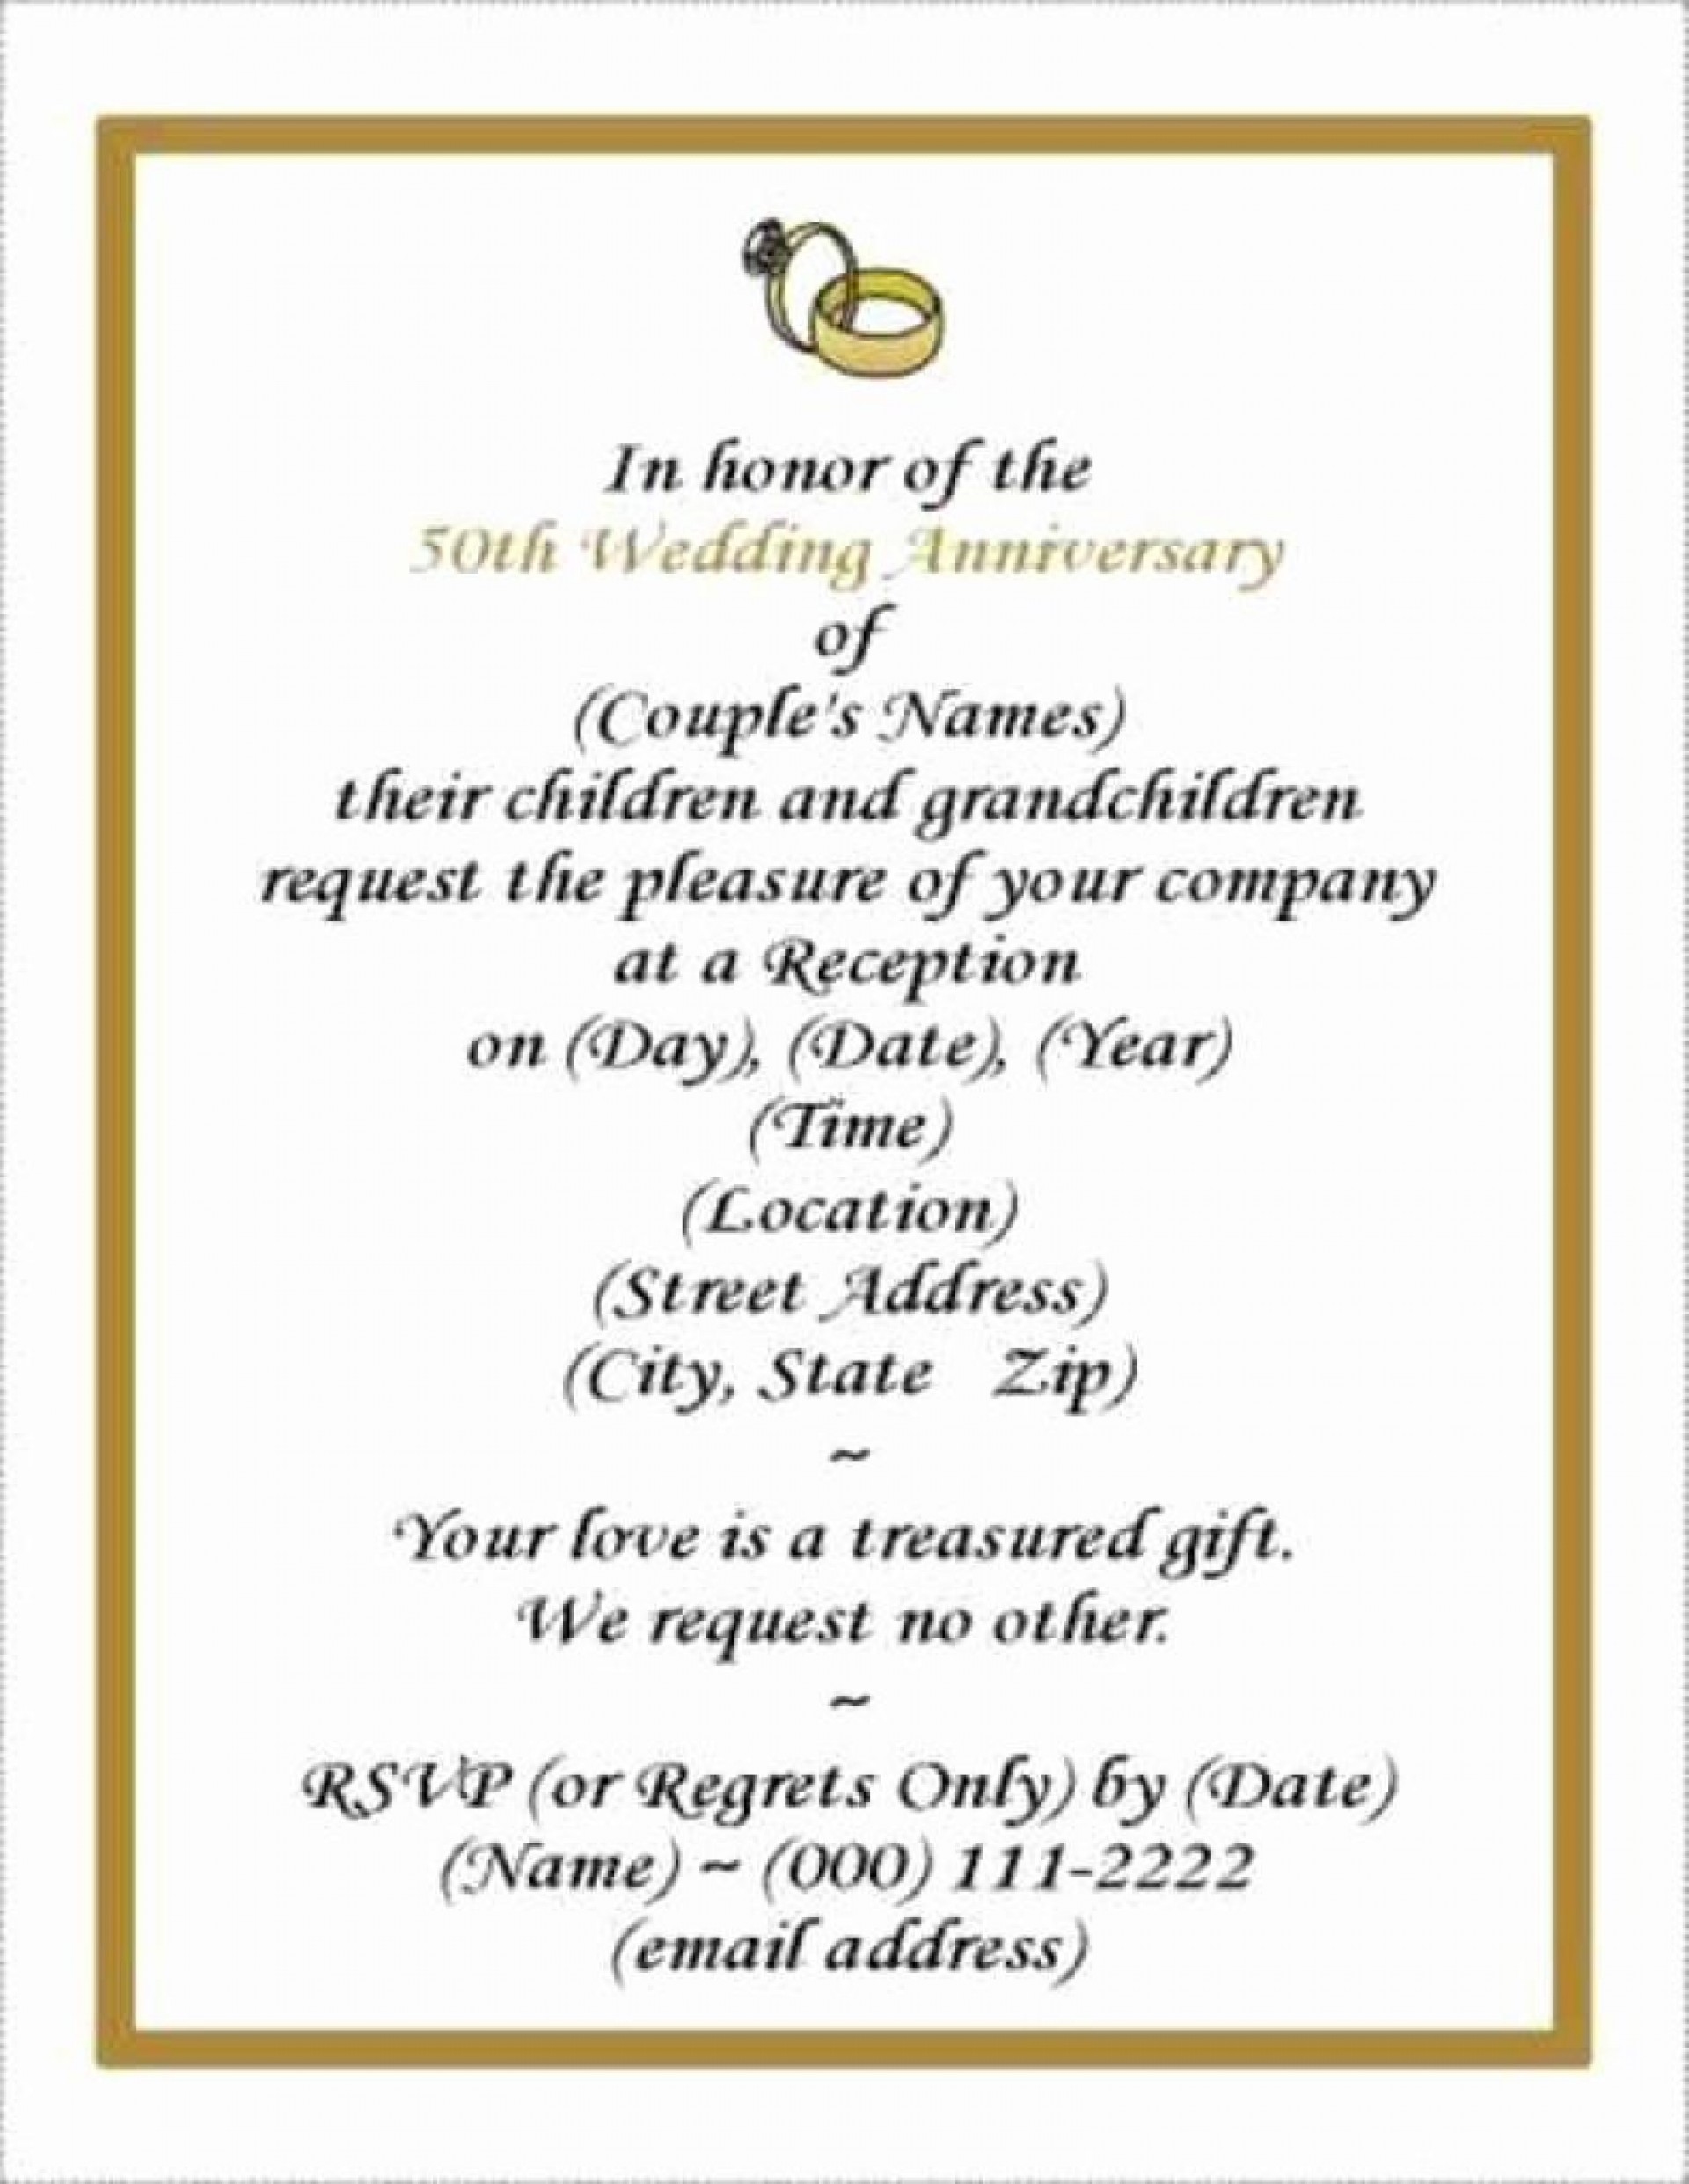 001 Dreaded 50th Anniversary Invitation Template Free High Resolution  For Word Golden Wedding Download1920